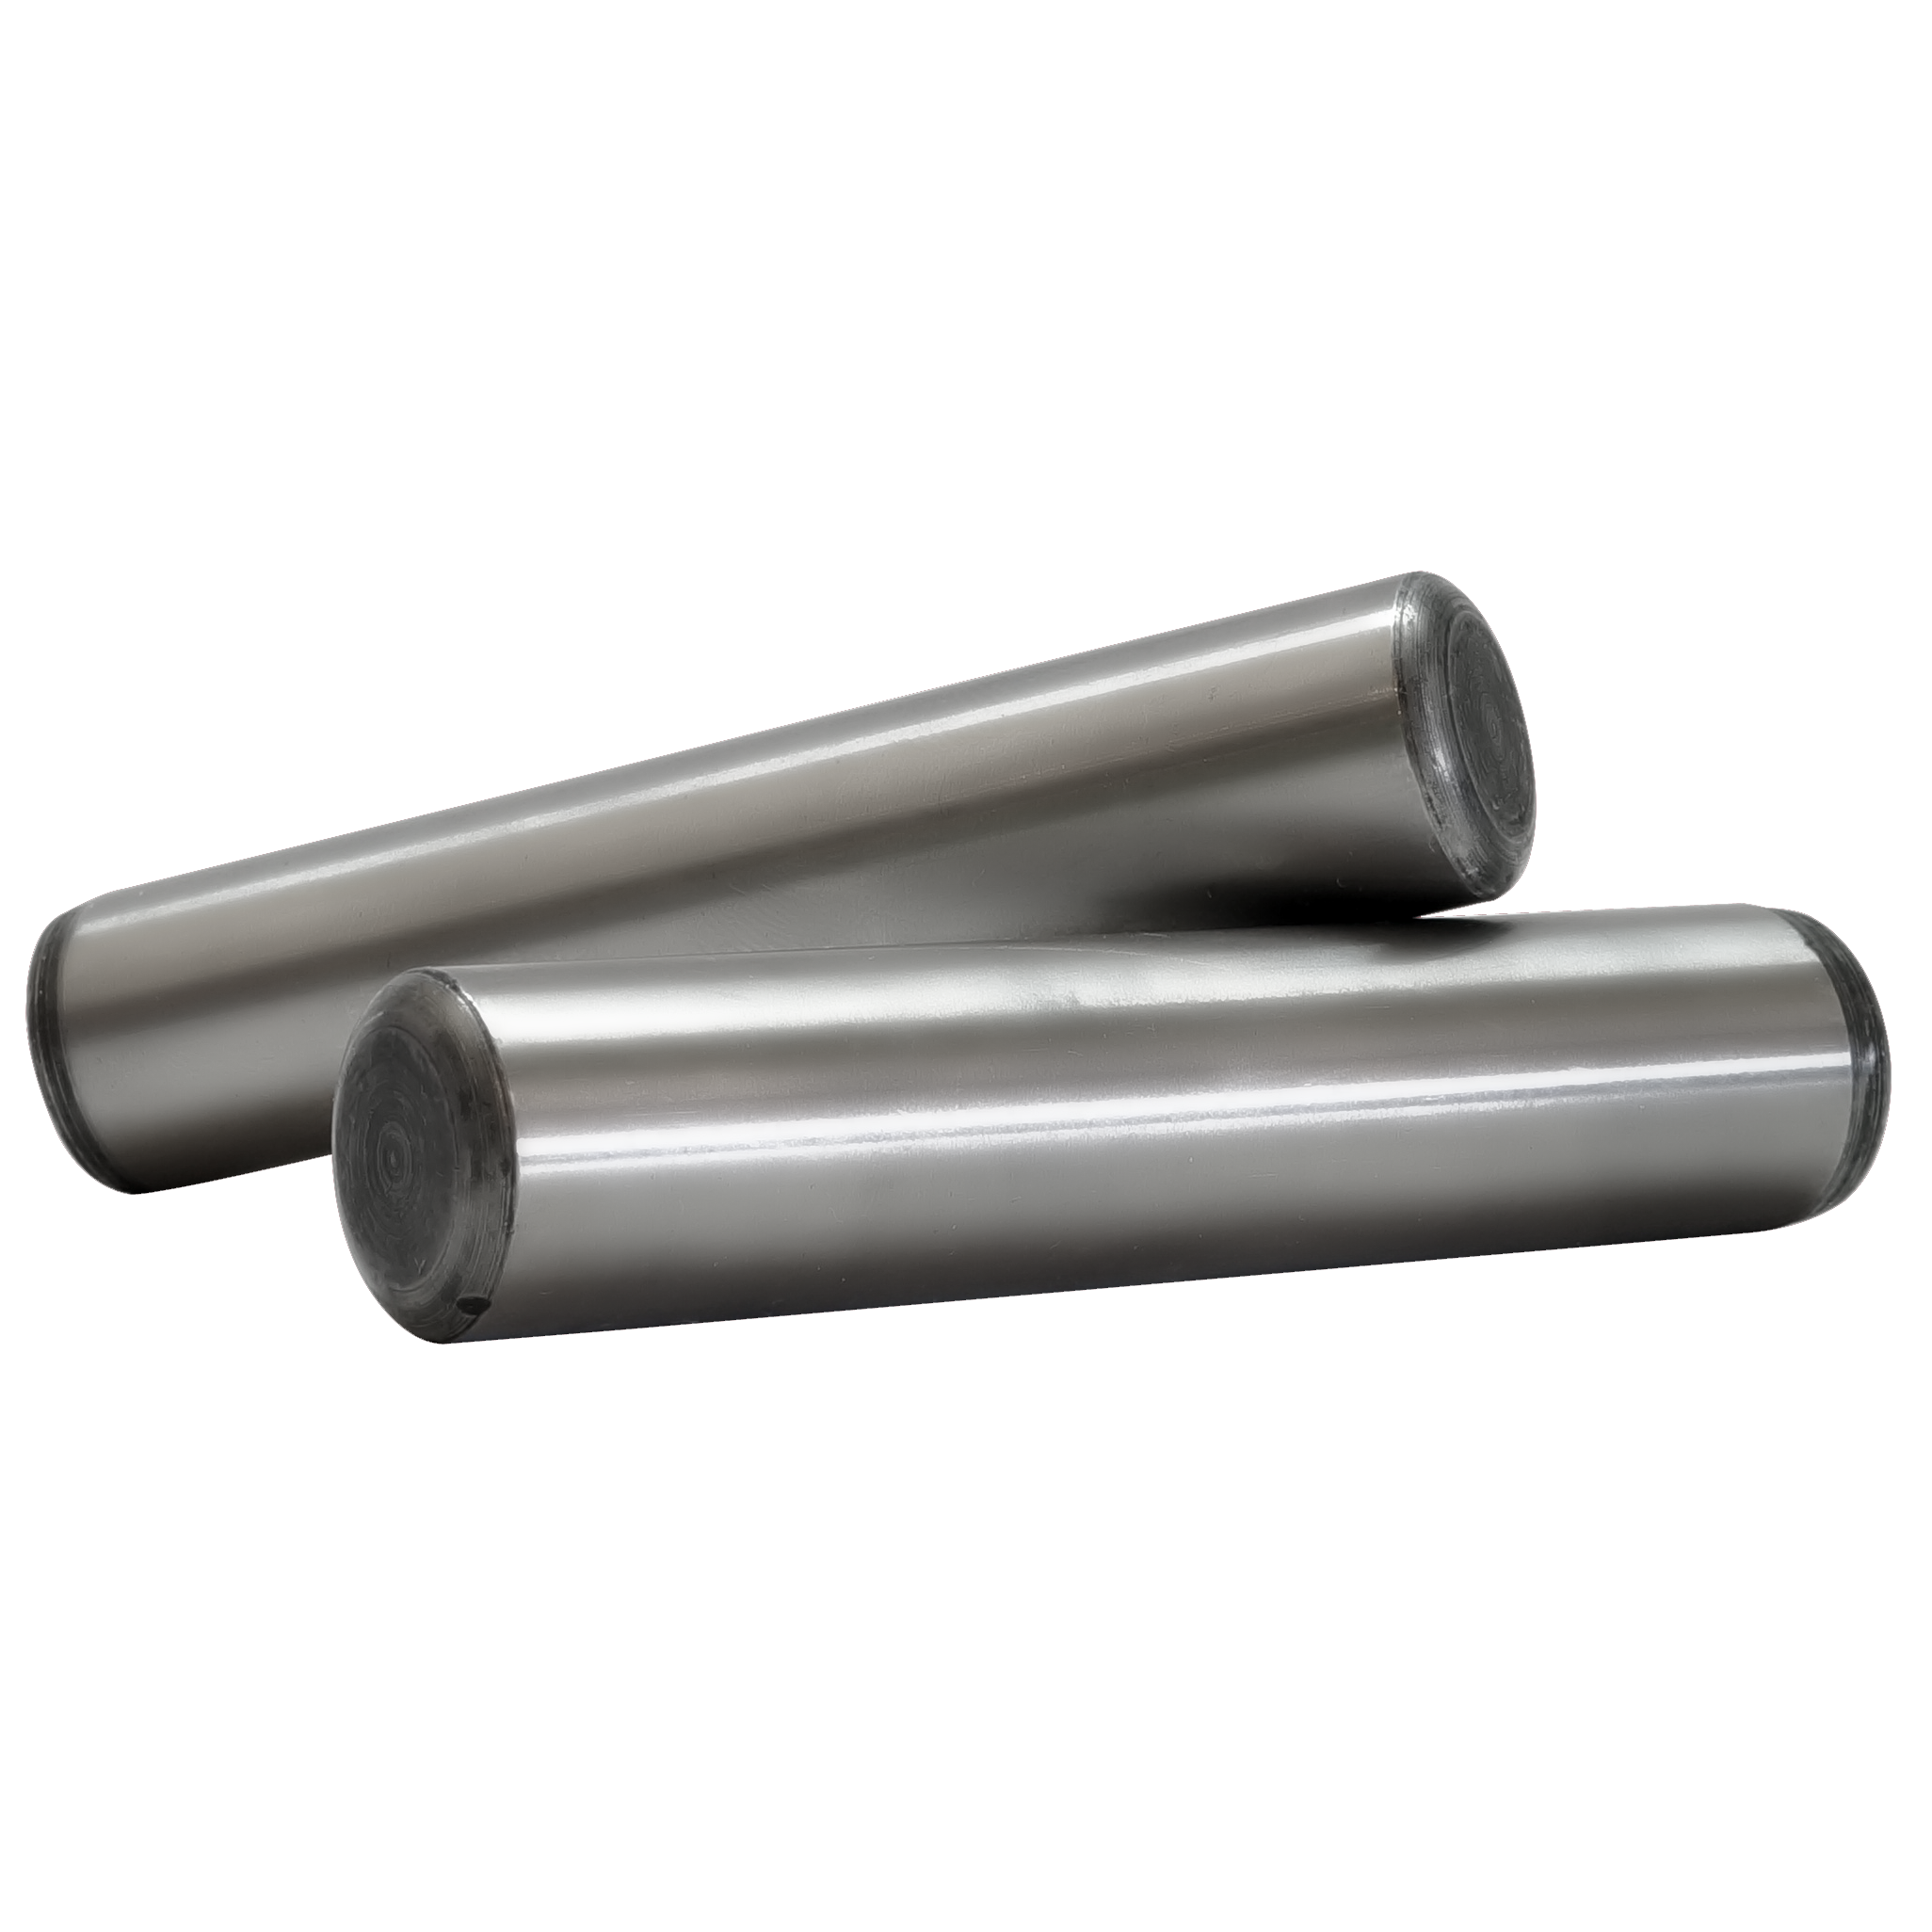 "M2x12 DIN 6325 Alloy Steel Dowel Pin Hardened Ground 0.0002"" Over Sized  (Unbrako)"